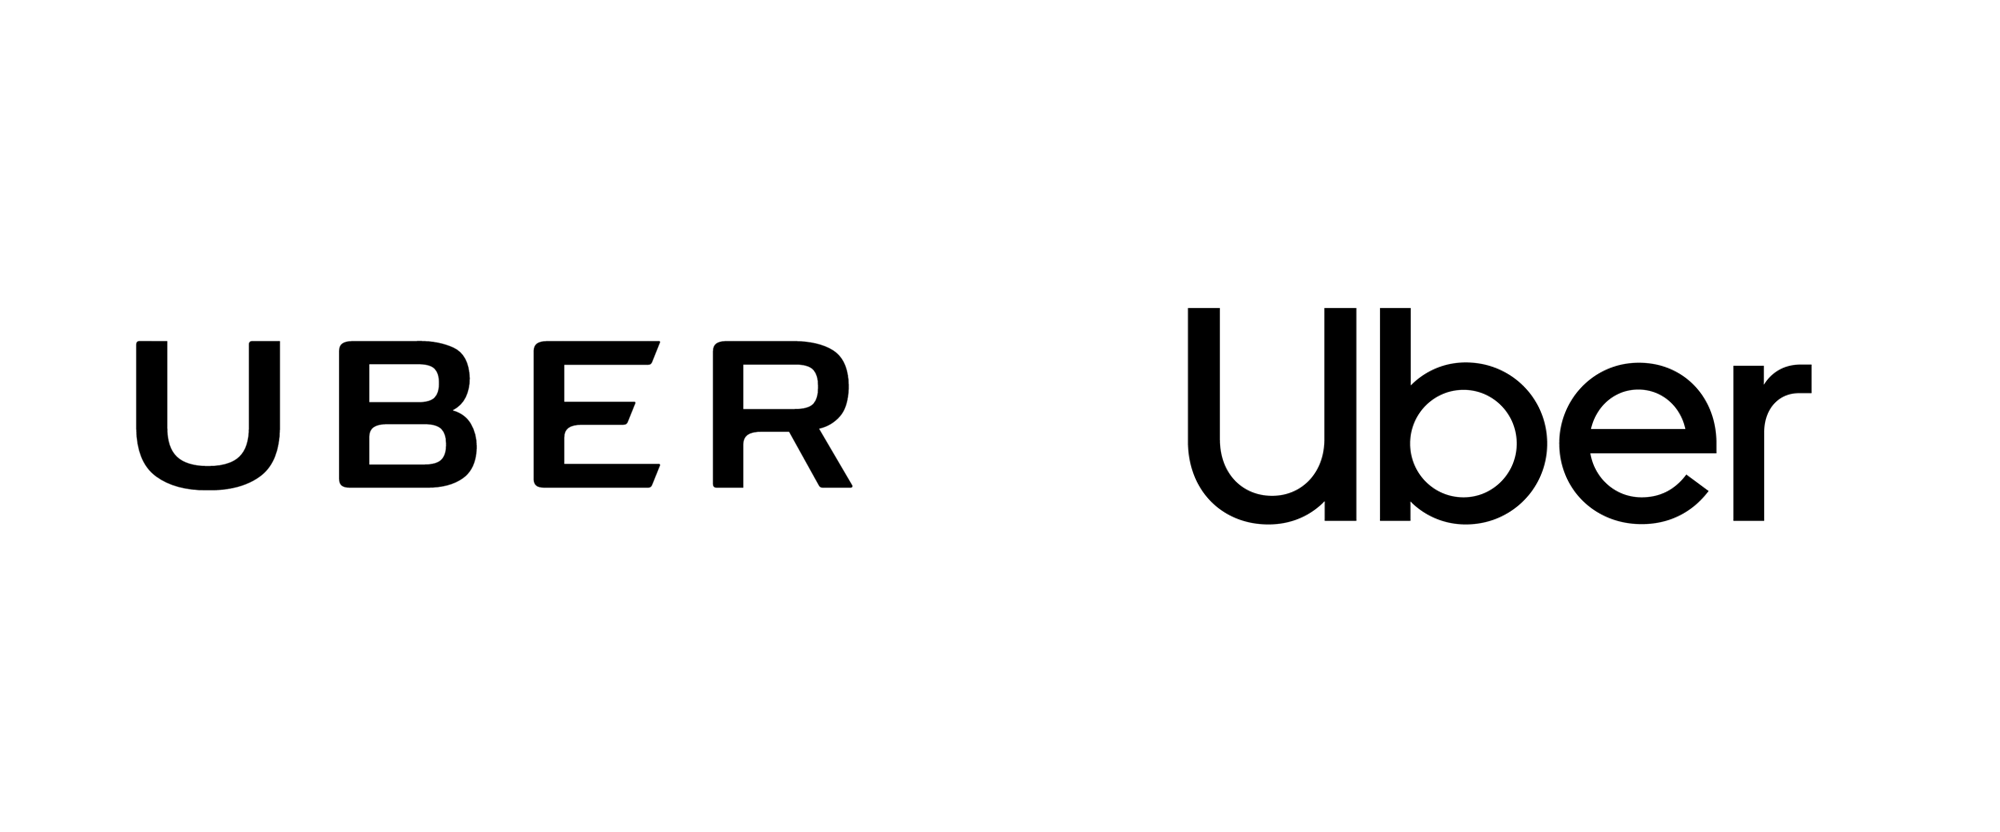 Reviewed New Logo And Identity For Uber By Wolff Olins And In House Typeface Logo Web Design Trends Web Design